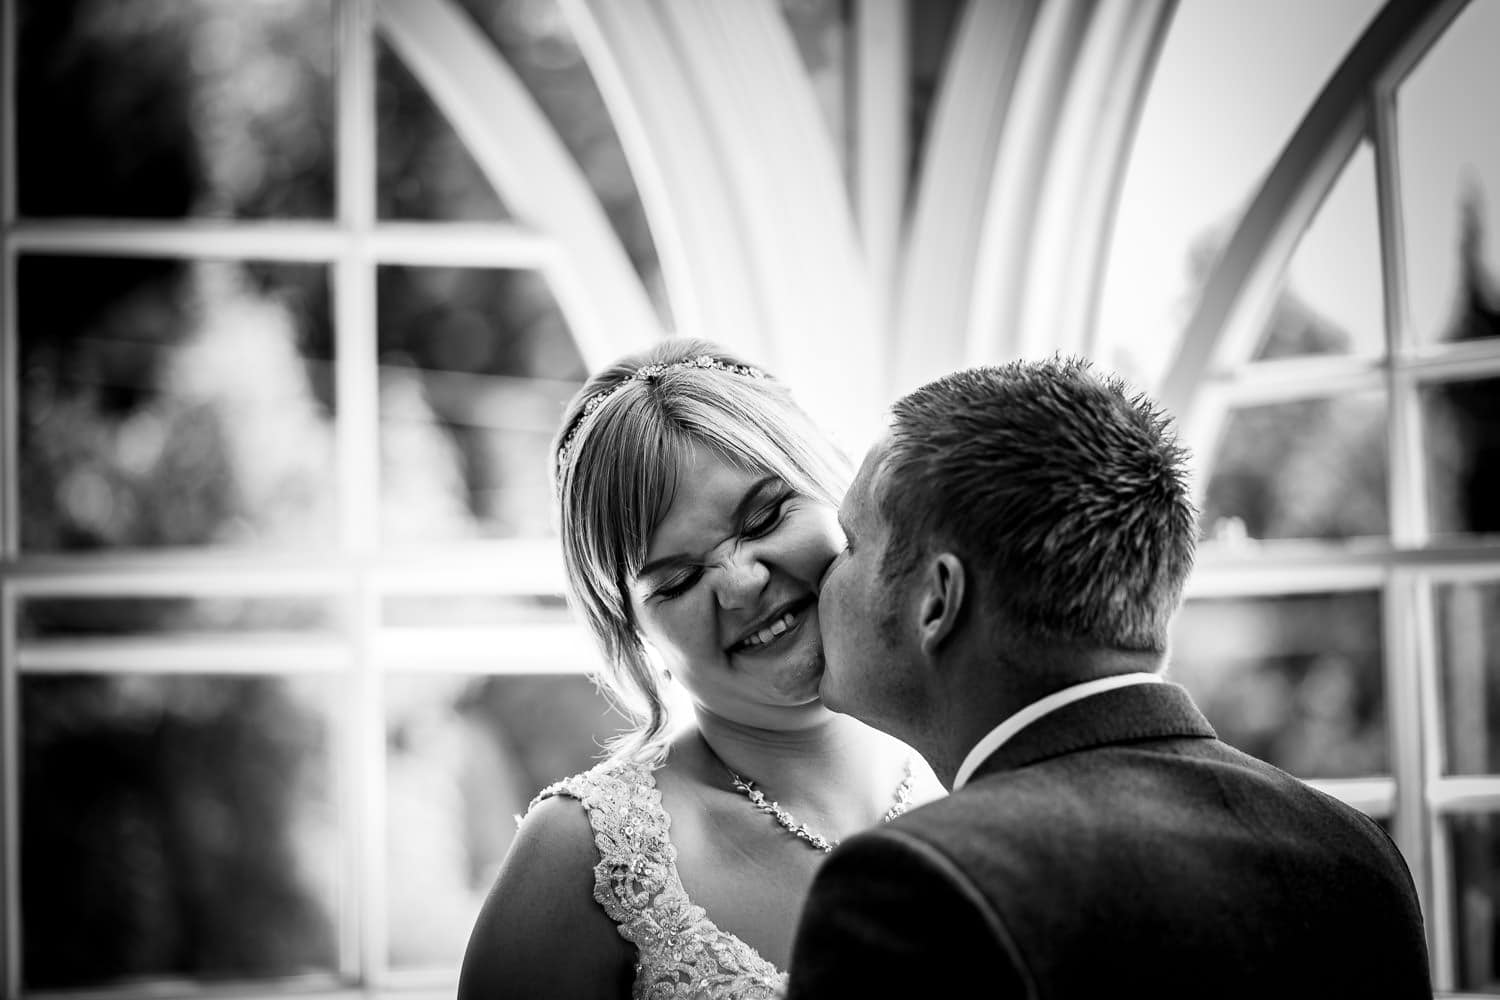 Warwick House Wedding Photography captures grooms kissing bride on the cheek